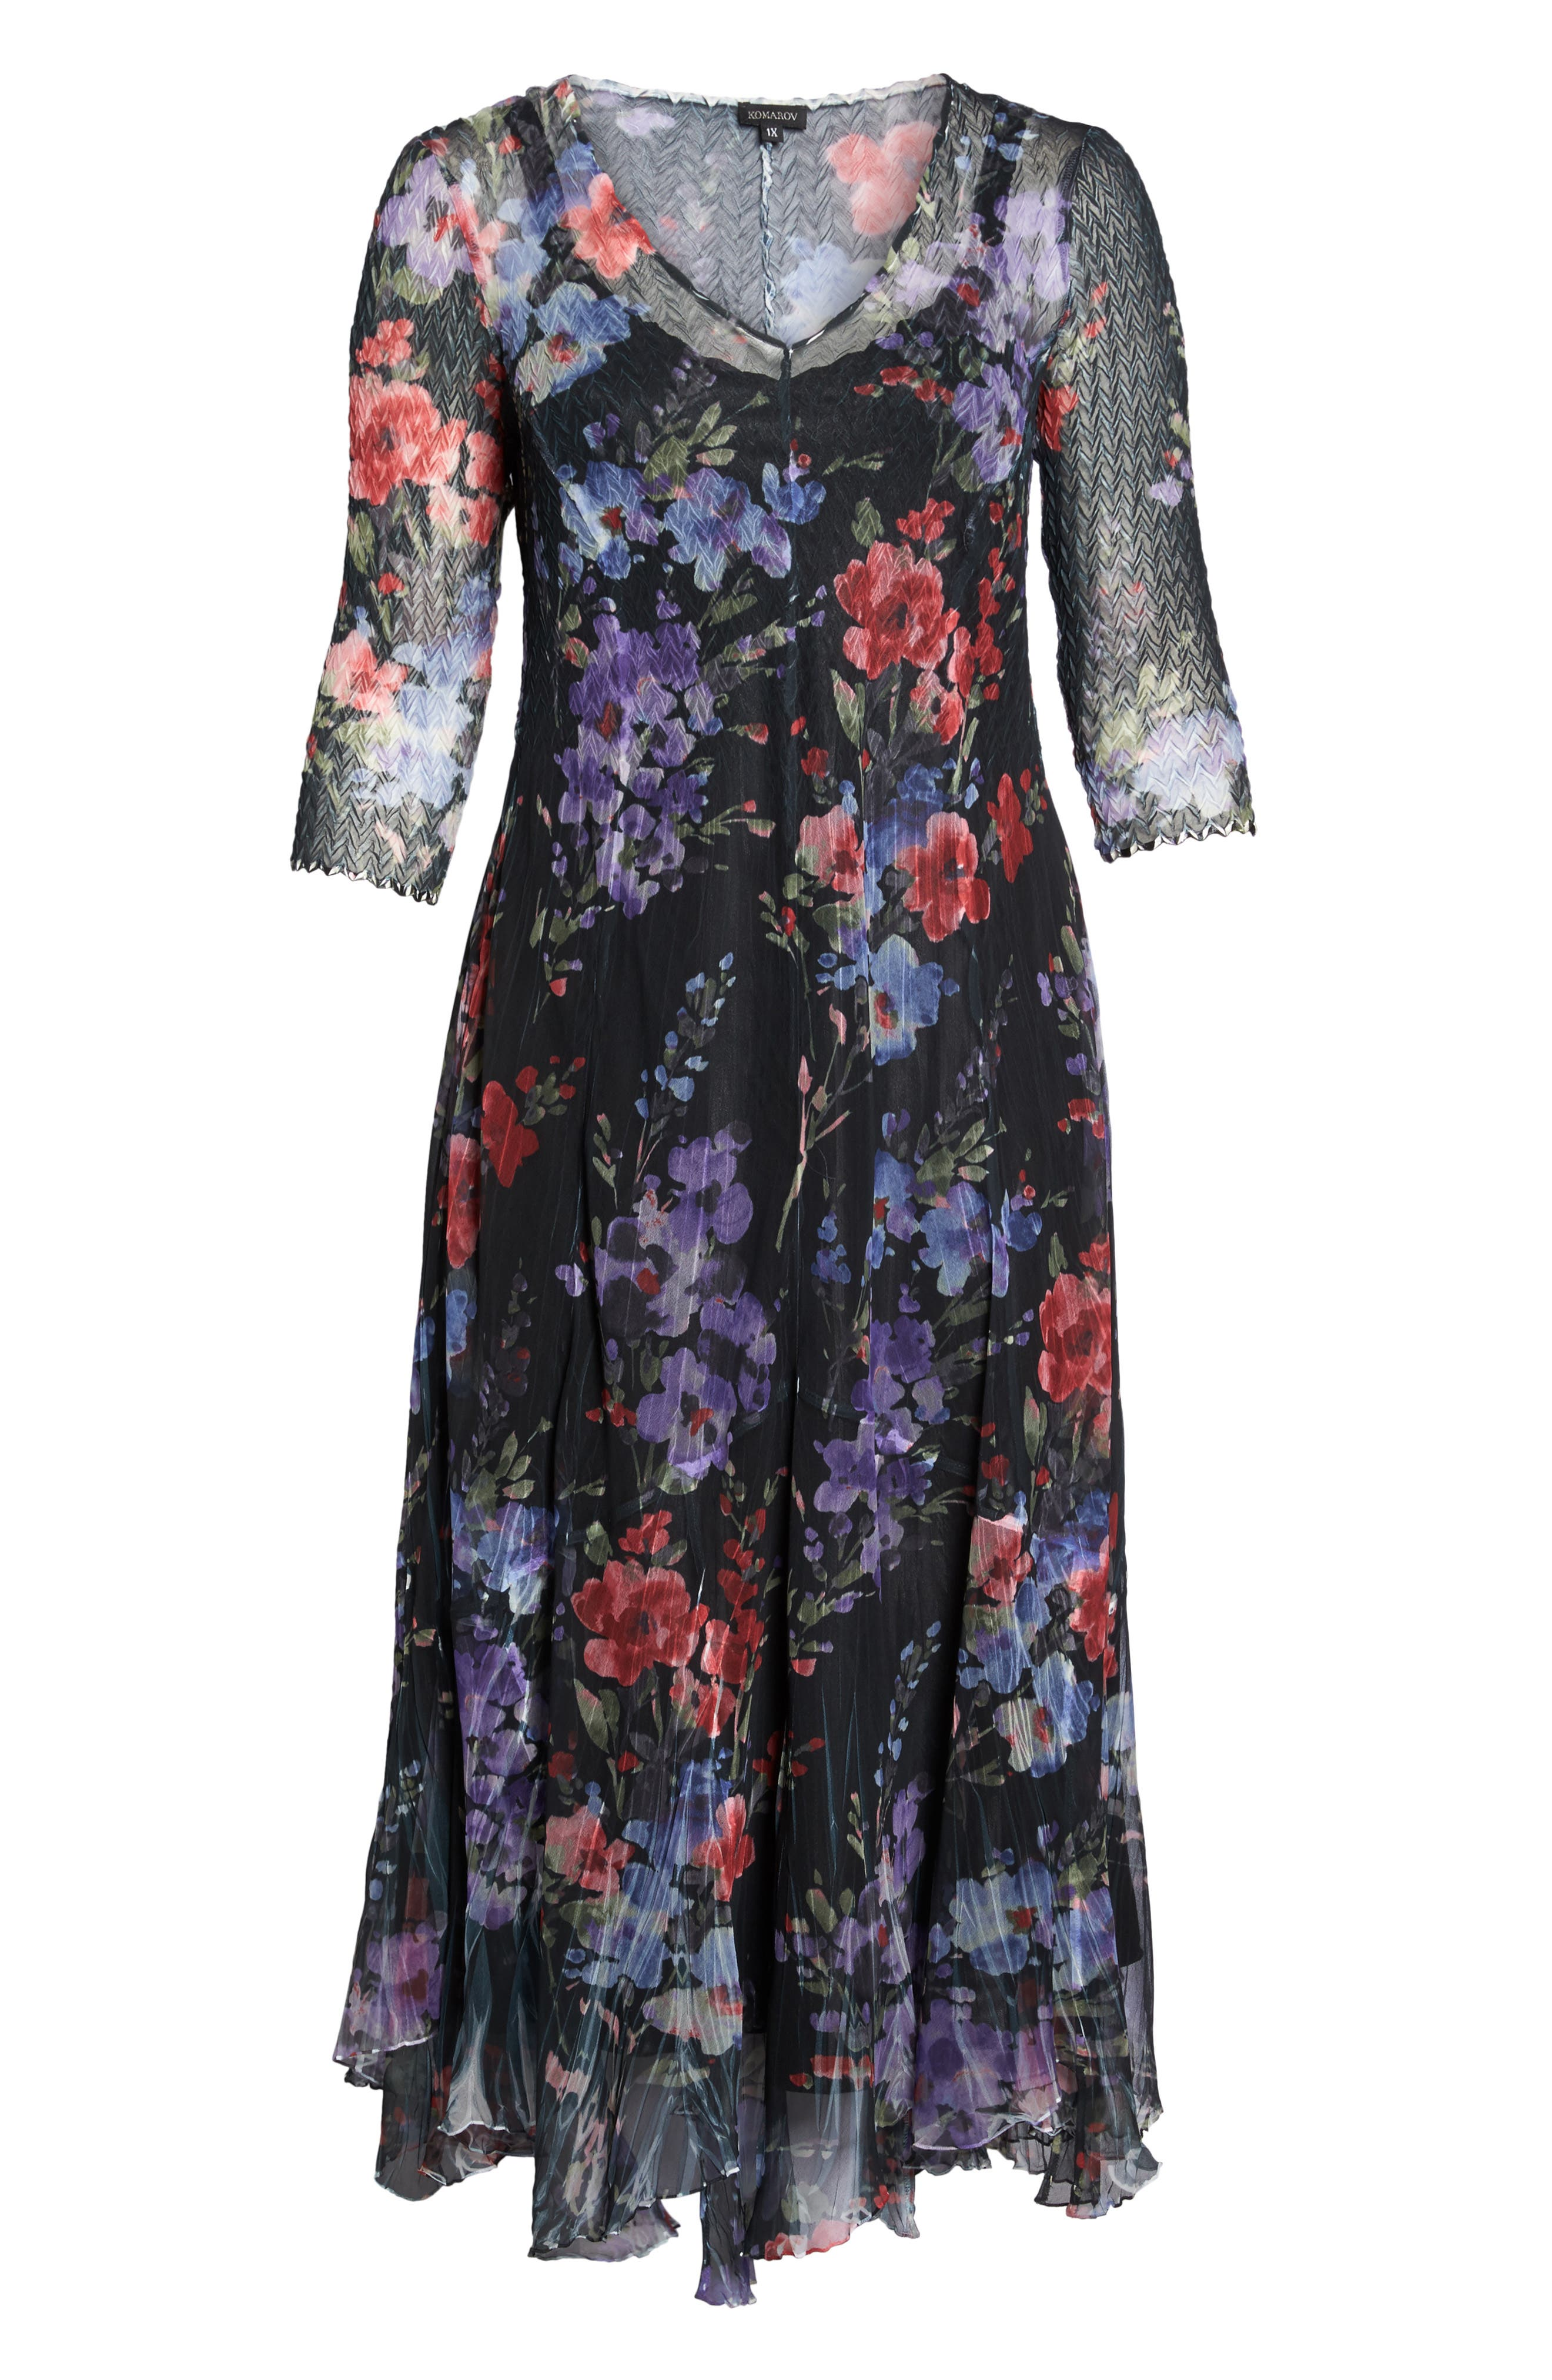 Lace & Charmeuse Floral Print Maxi Dress,                             Alternate thumbnail 6, color,                             400